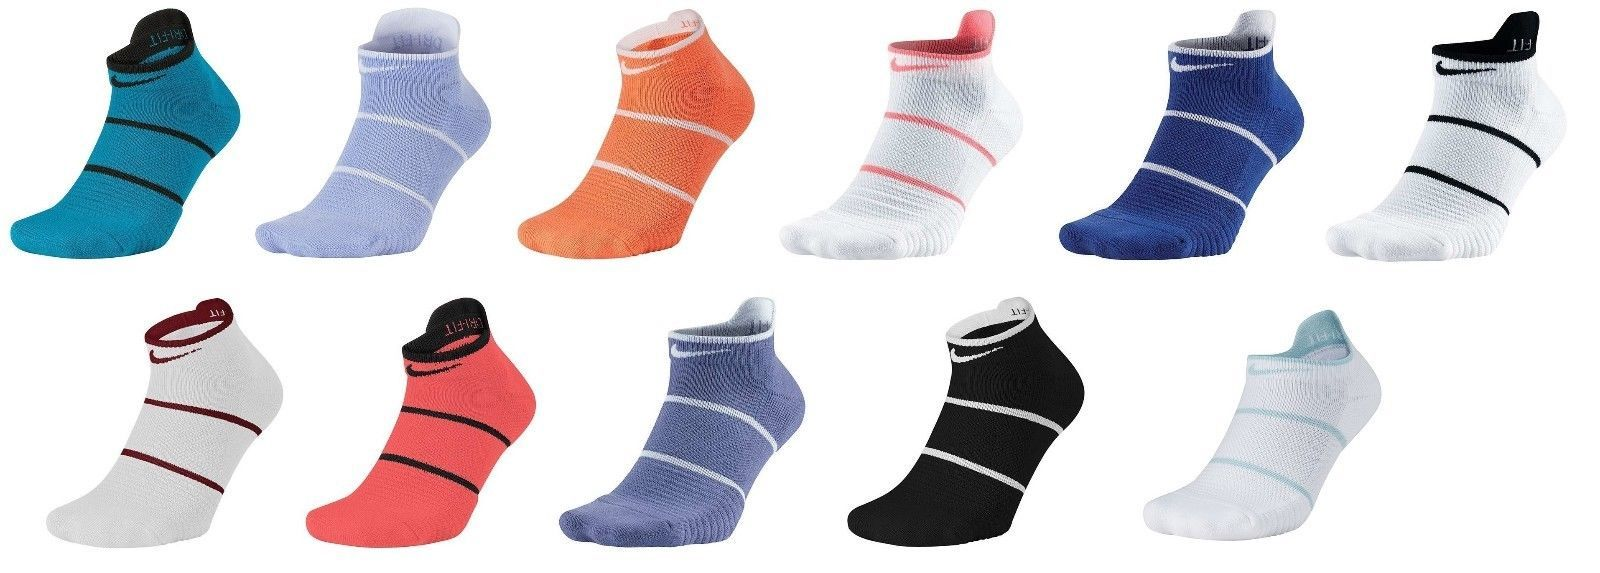 Primary image for New Nike Court Essential No Show Tennis Dri-Fit Socks L SX6914 Rafa Federer L/R